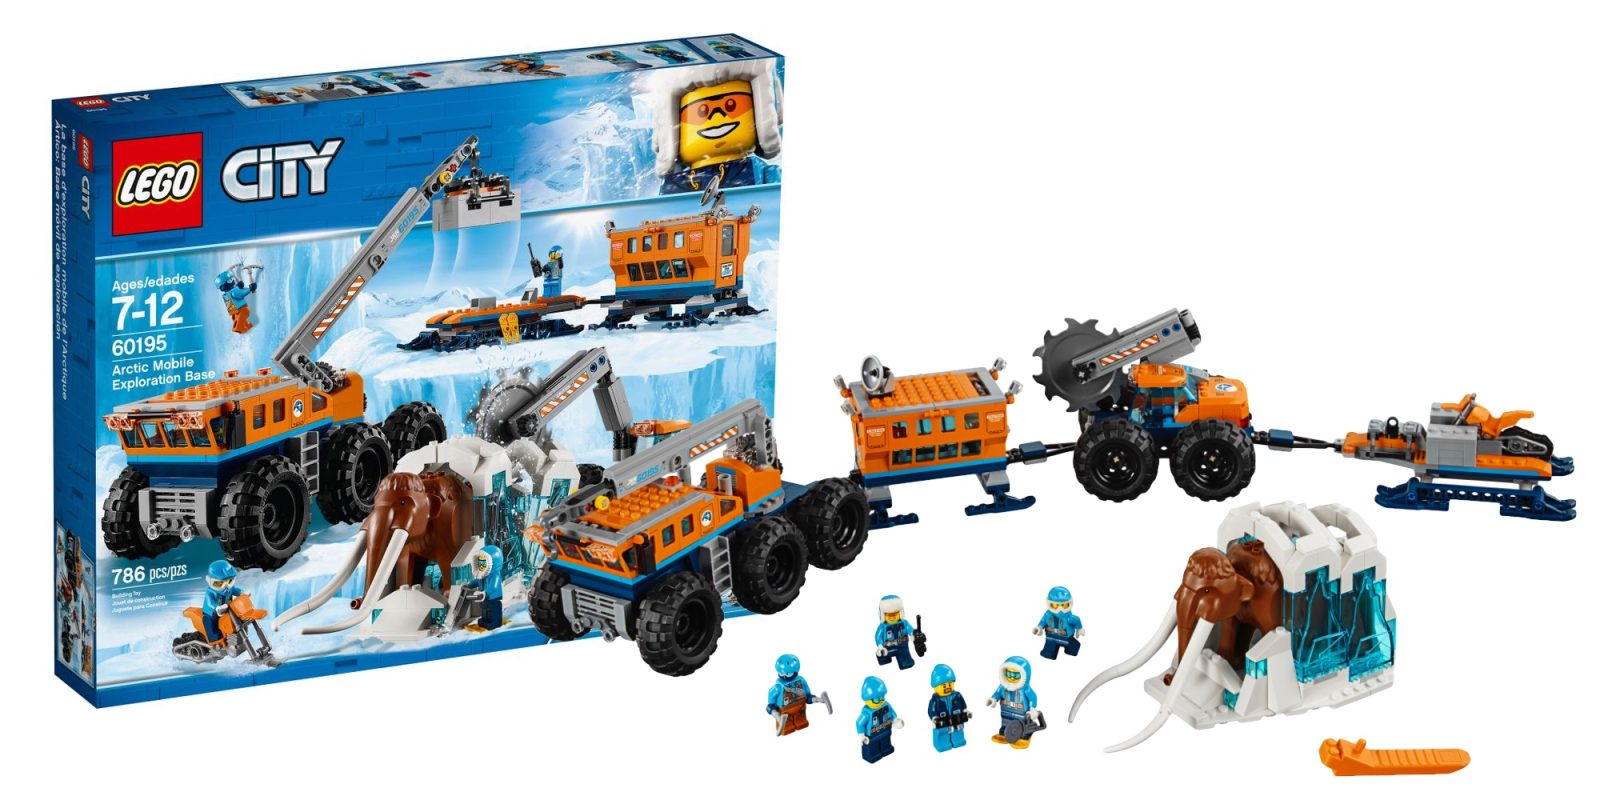 Assemble a new low on LEGO's Arctic Exploration Base at $98, more from $10